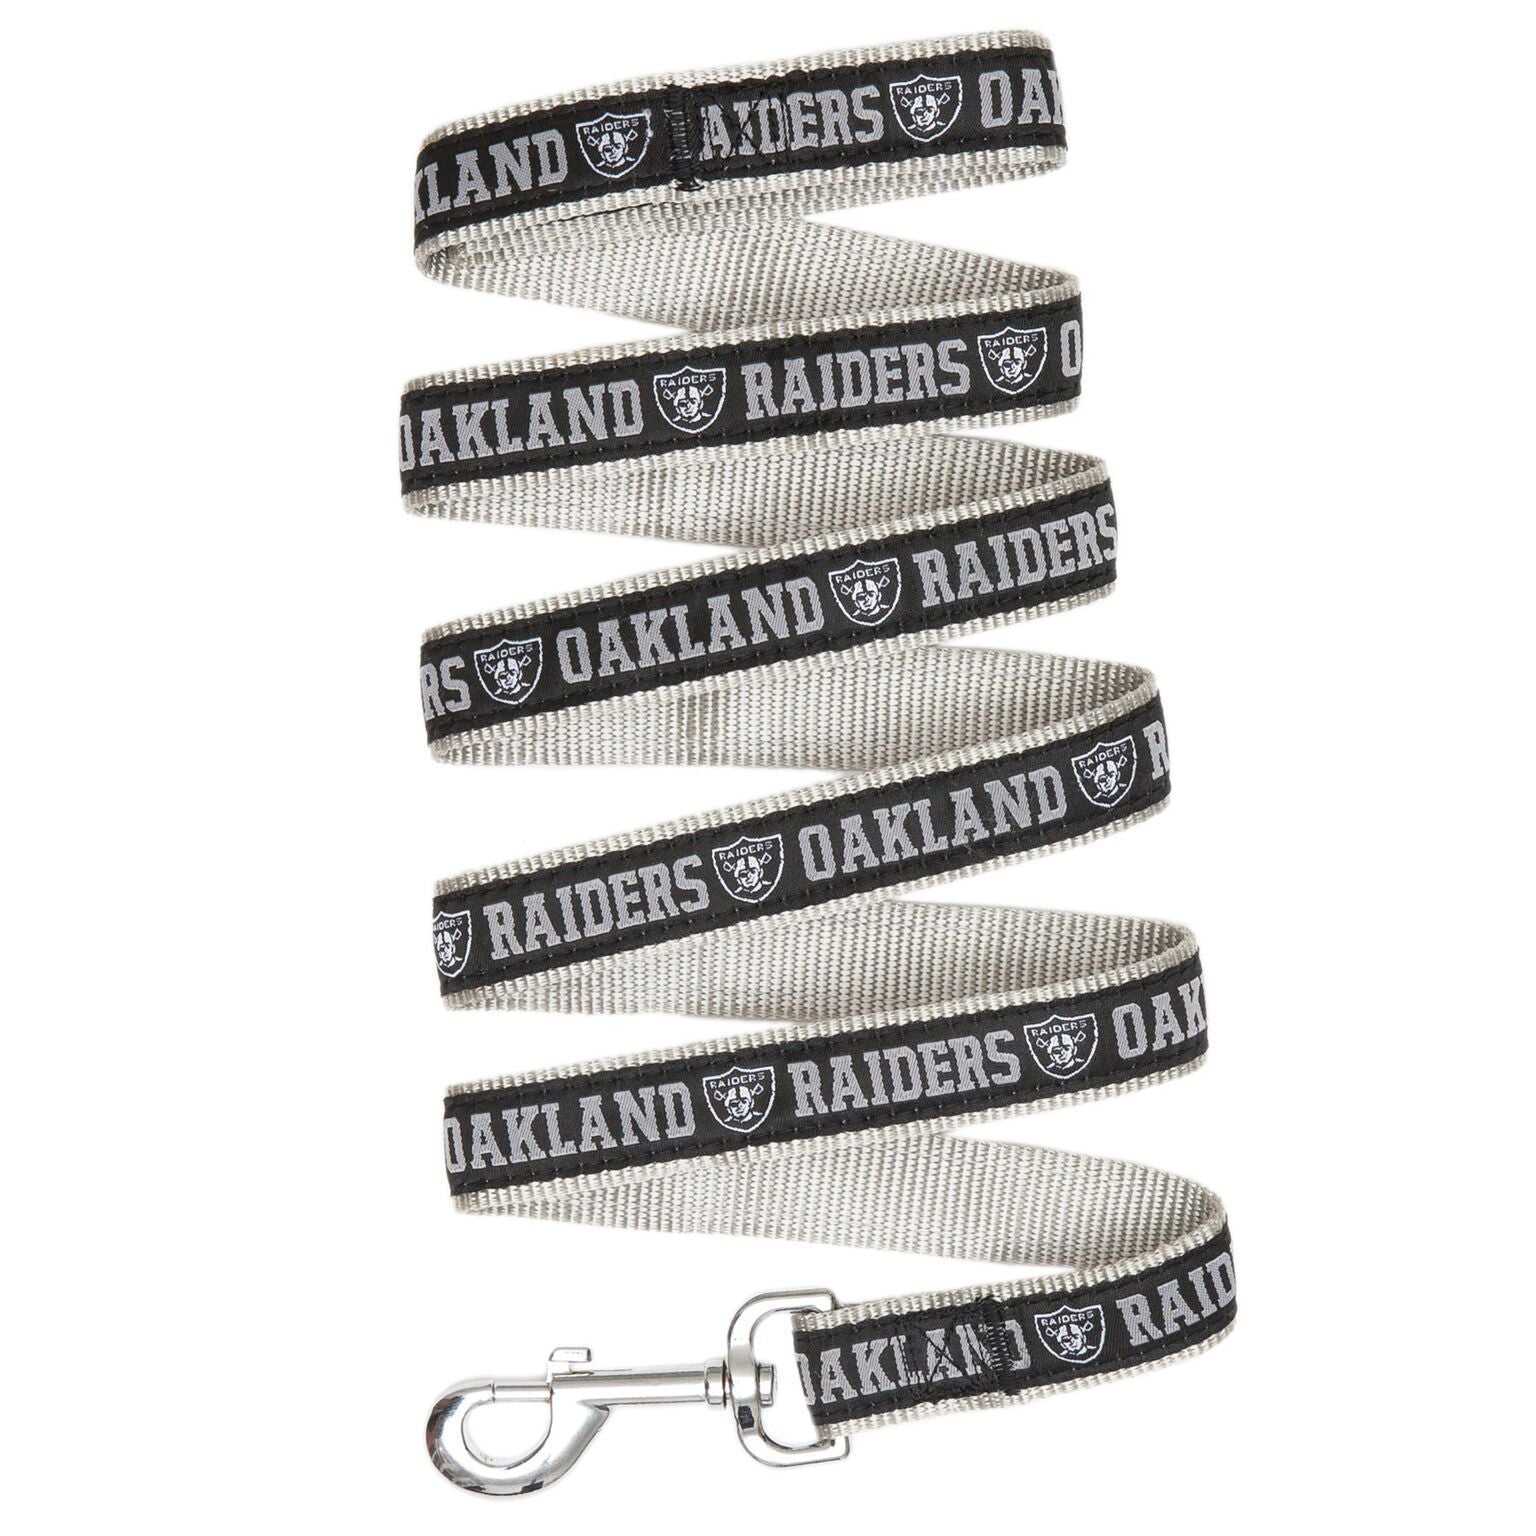 Oakland Raiders Football Jersey Cheerleading Uniform Collar Leash - Jersey Champs - Custom Basketball, Baseball, Football & Hockey Jerseys